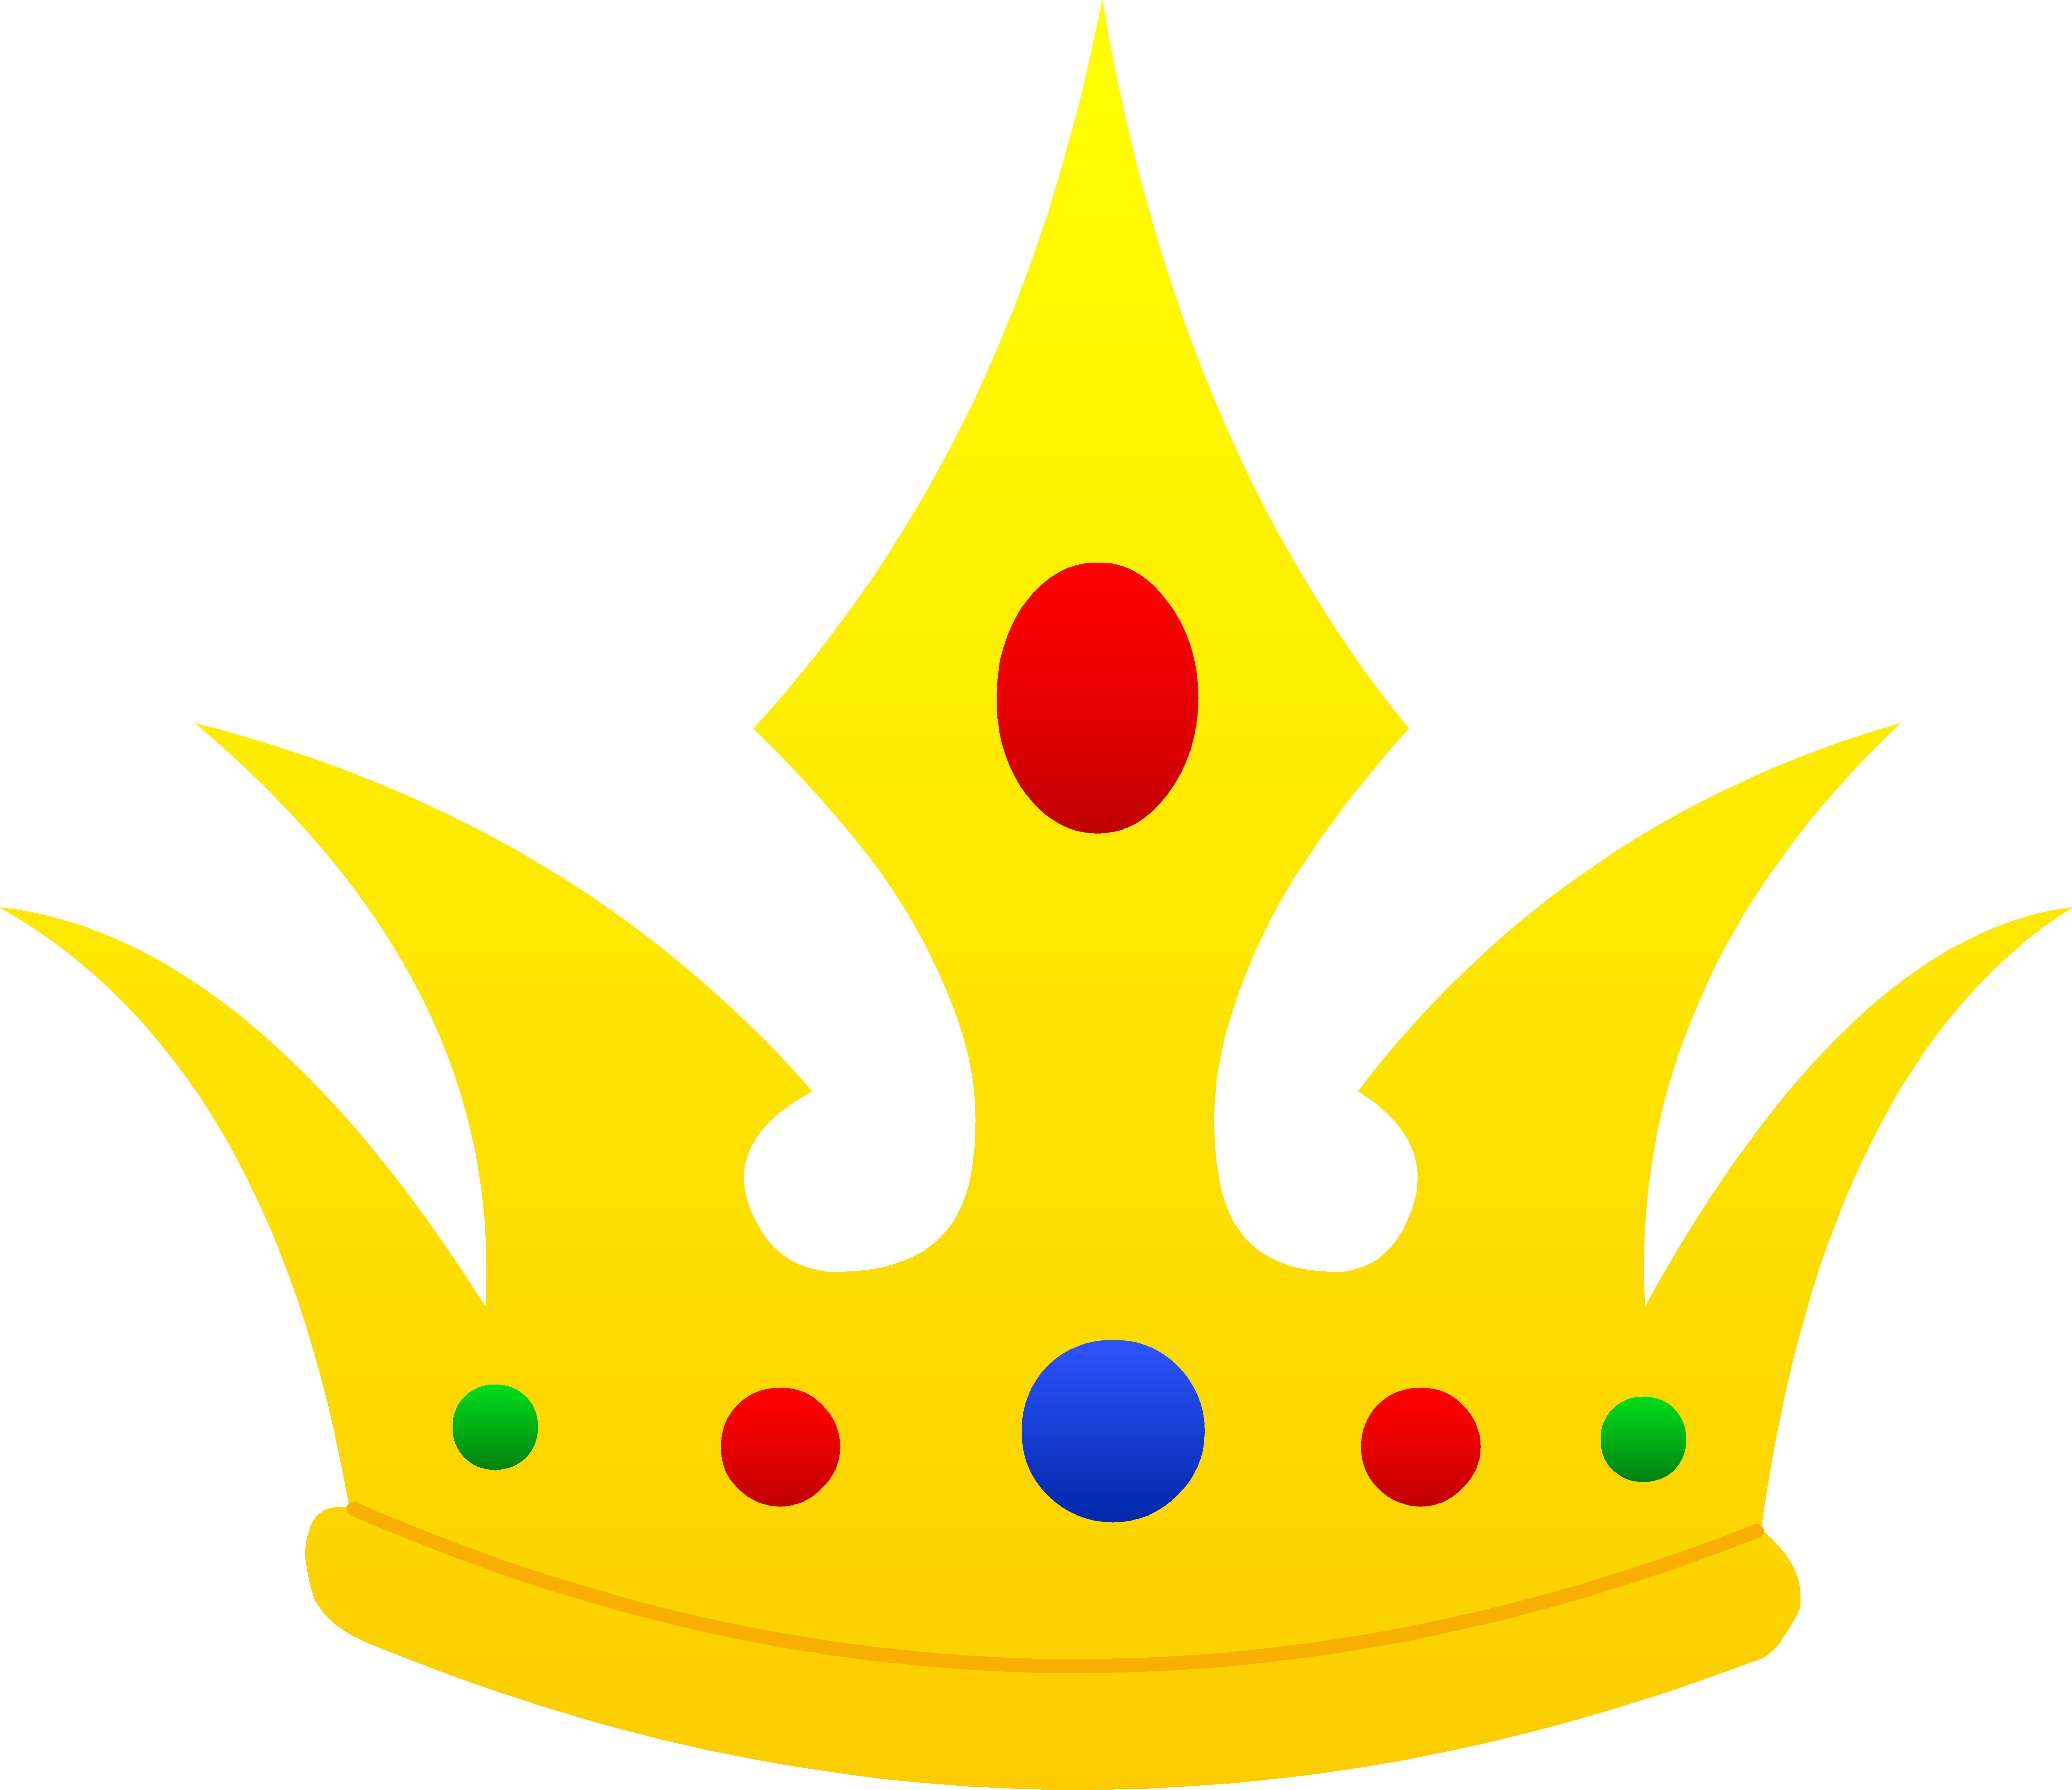 Download Hd Crown Clipart Cartoon King Crown Clipart Png Transparent Png Image Nicepng Com Download a free preview or high quality adobe illustrator ai, eps, pdf and high resolution jpeg versions. nicepng